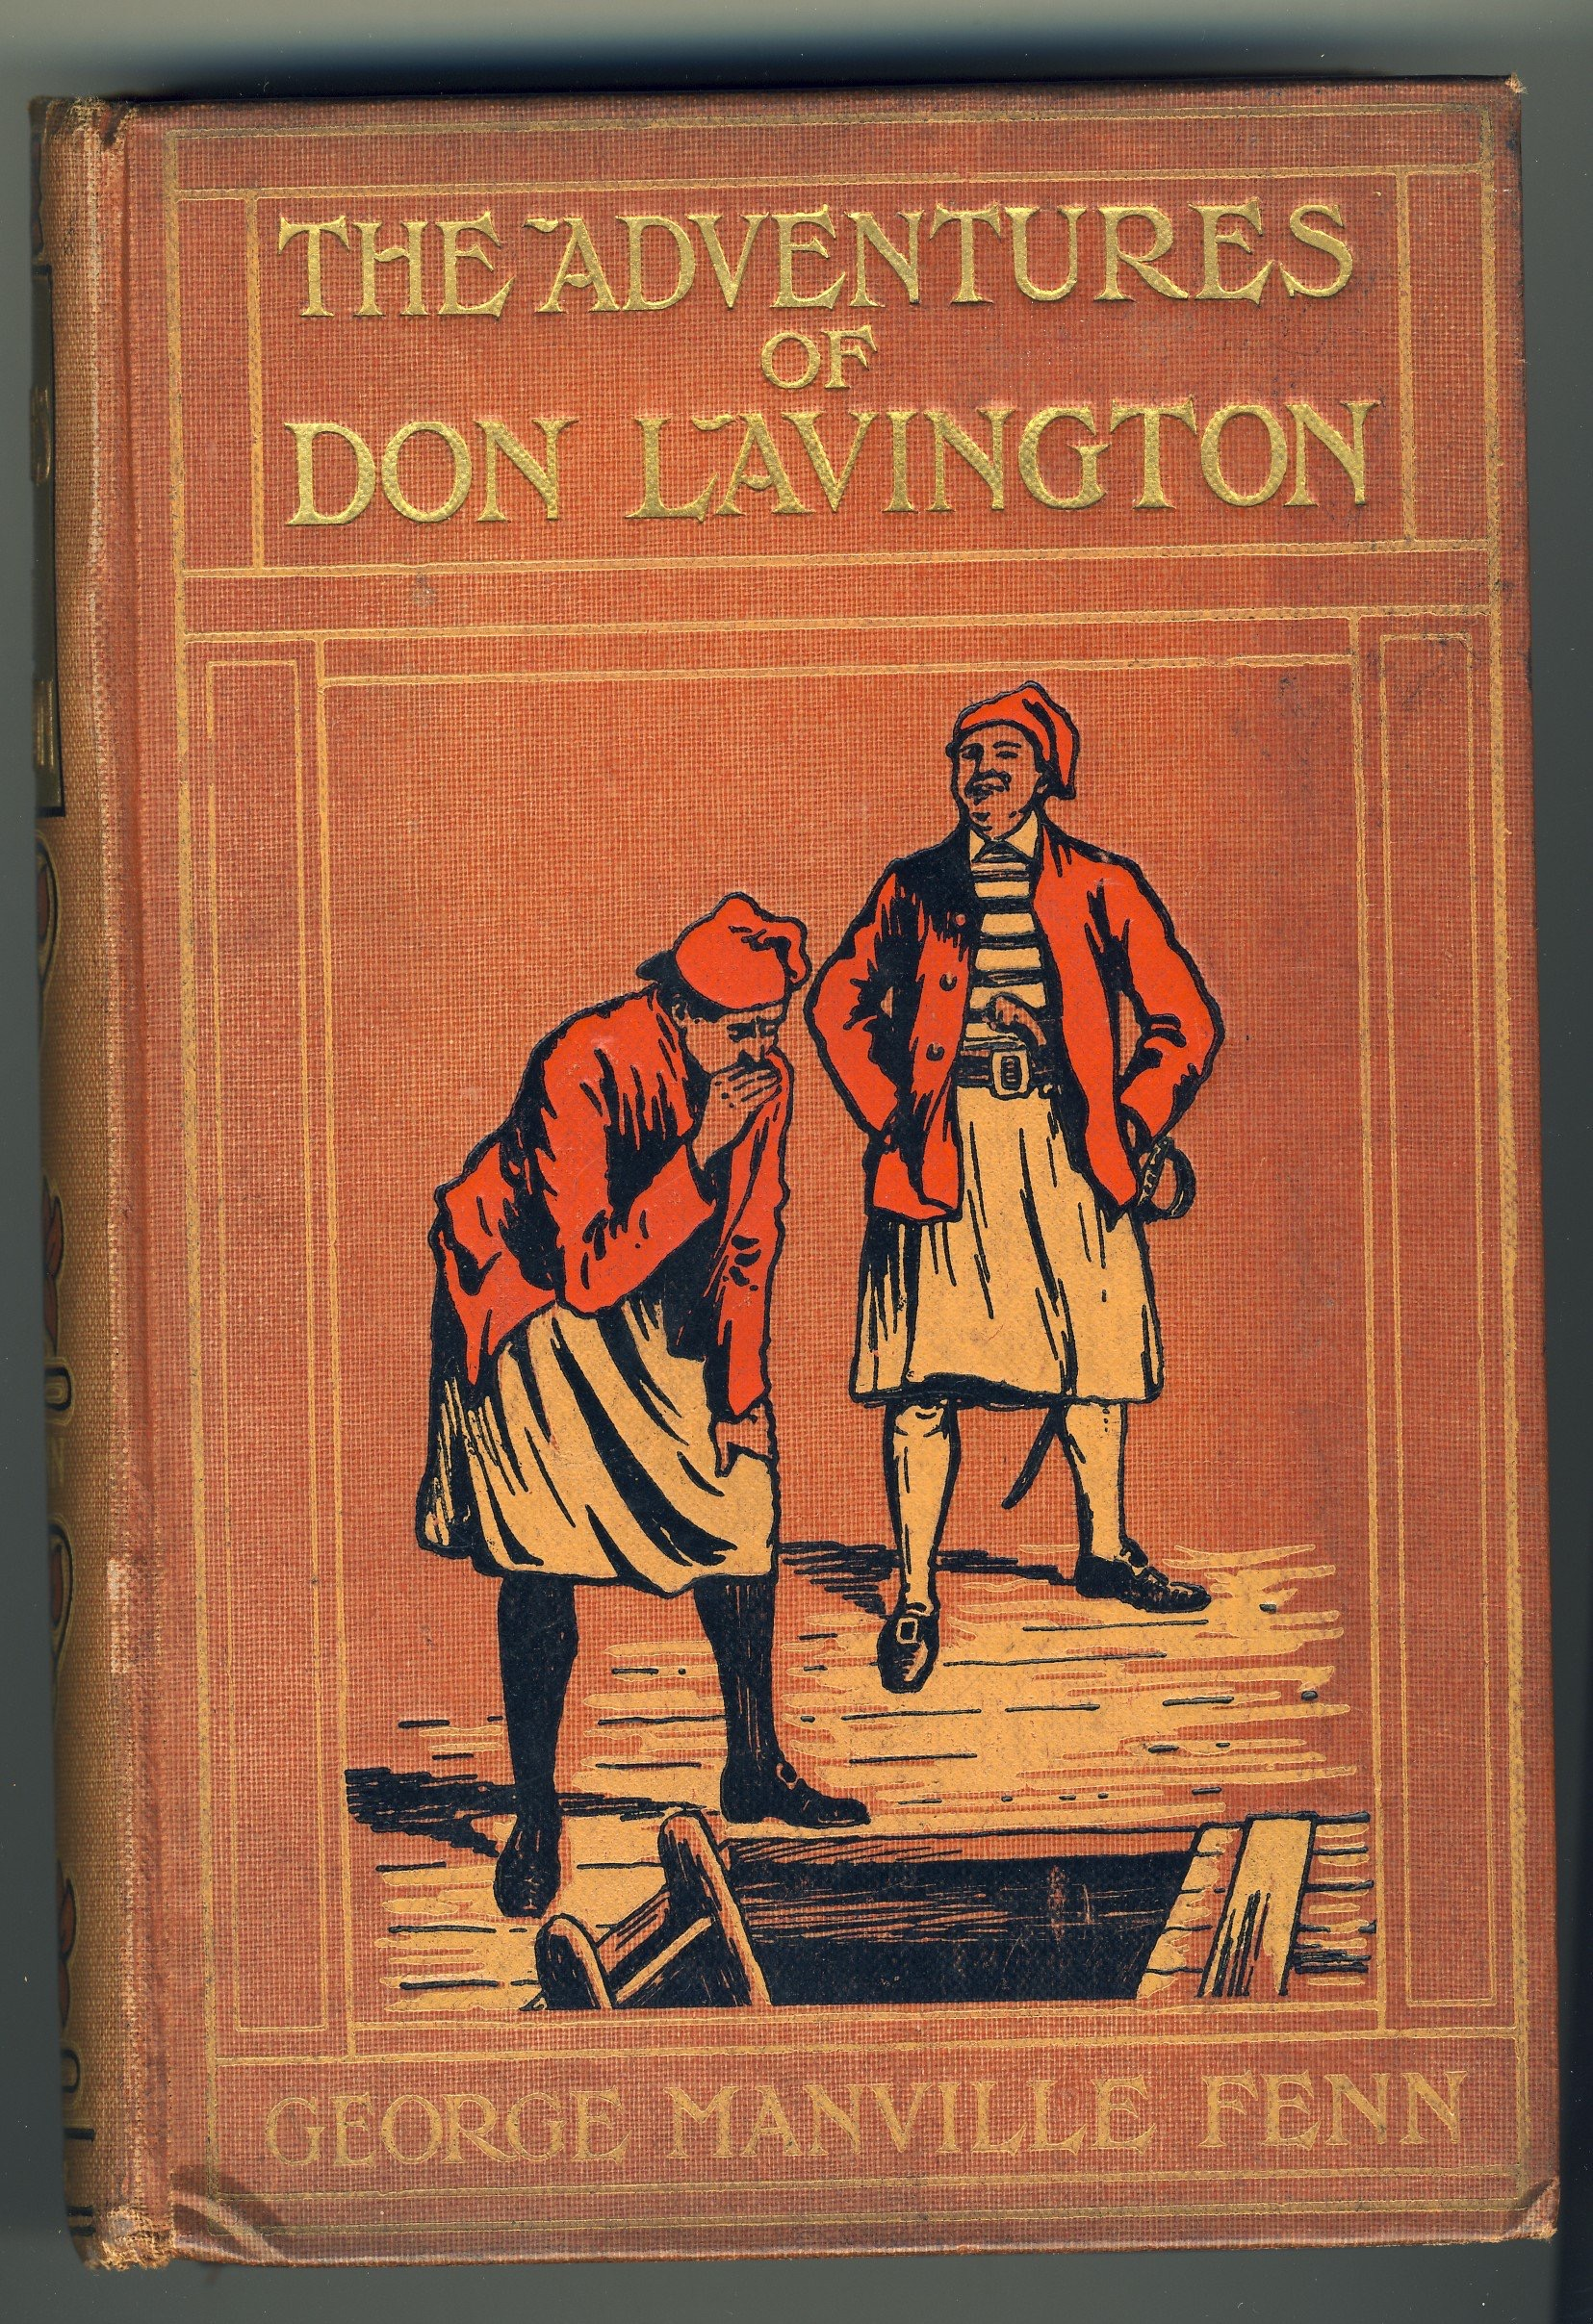 The Adventures Of Don Lavington _ GEORGE FENN